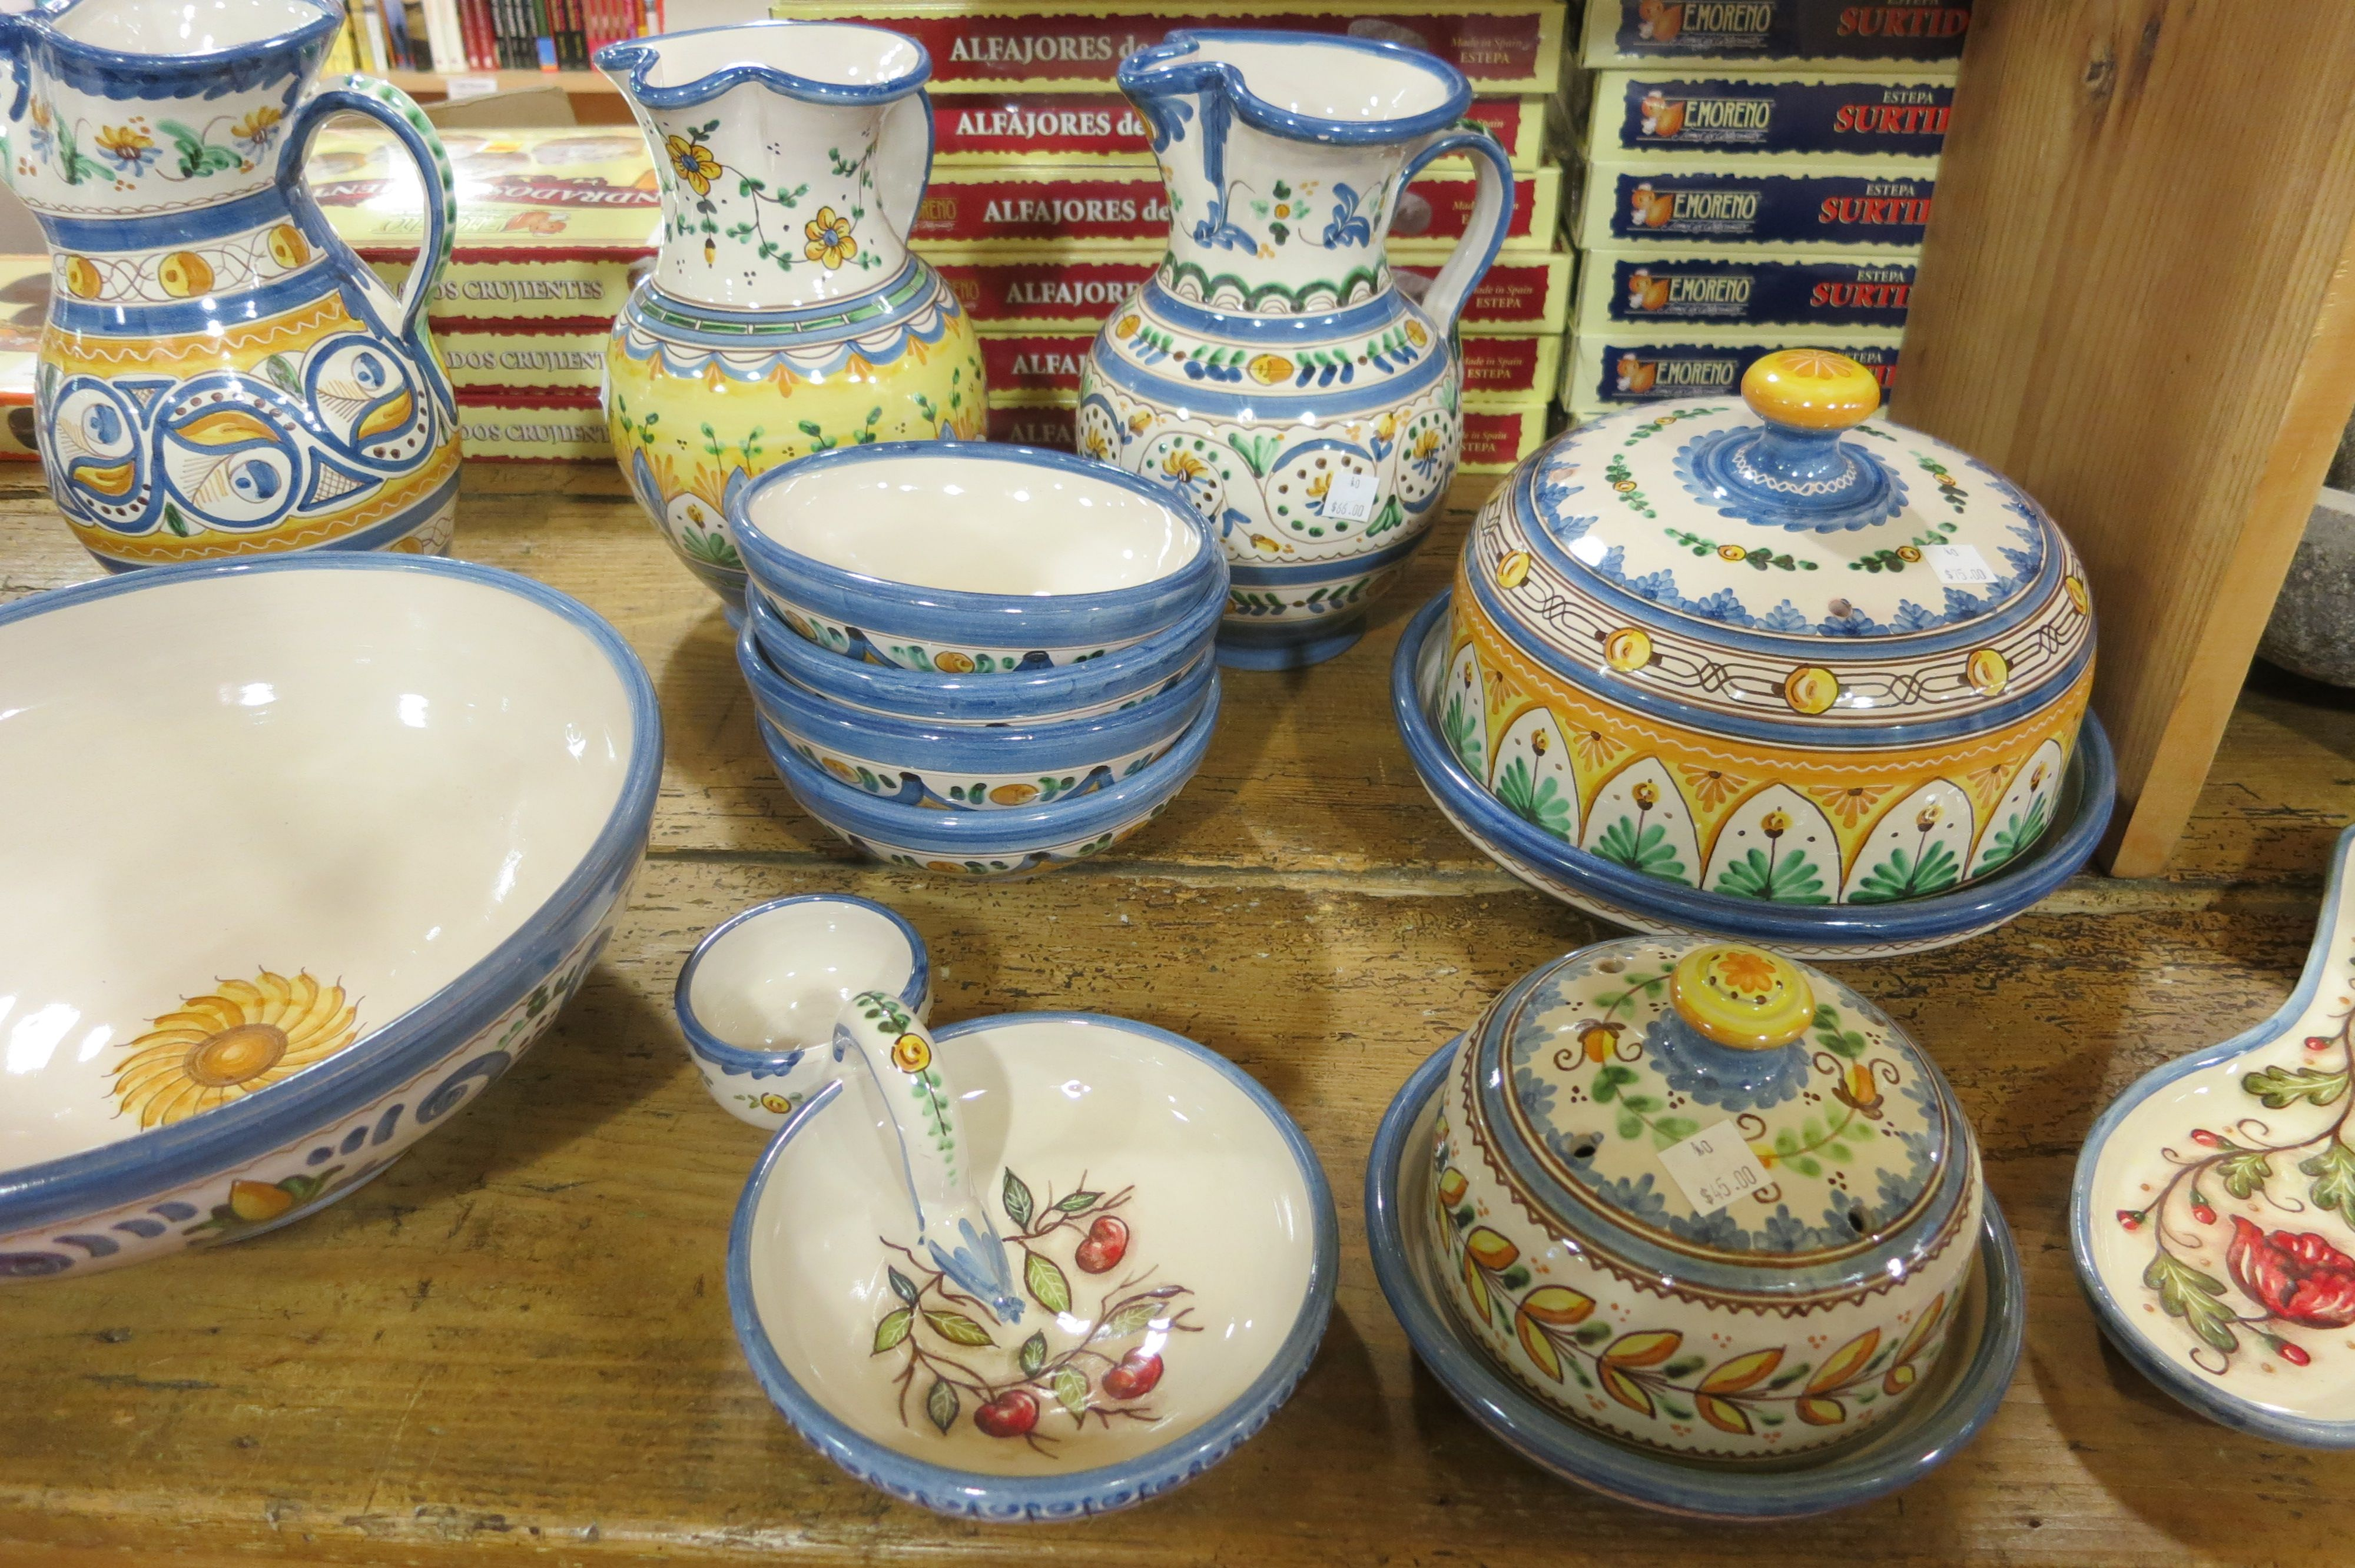 spanish tableware ceramics - Google Search & spanish tableware ceramics - Google Search | Mediterranean ceramics ...